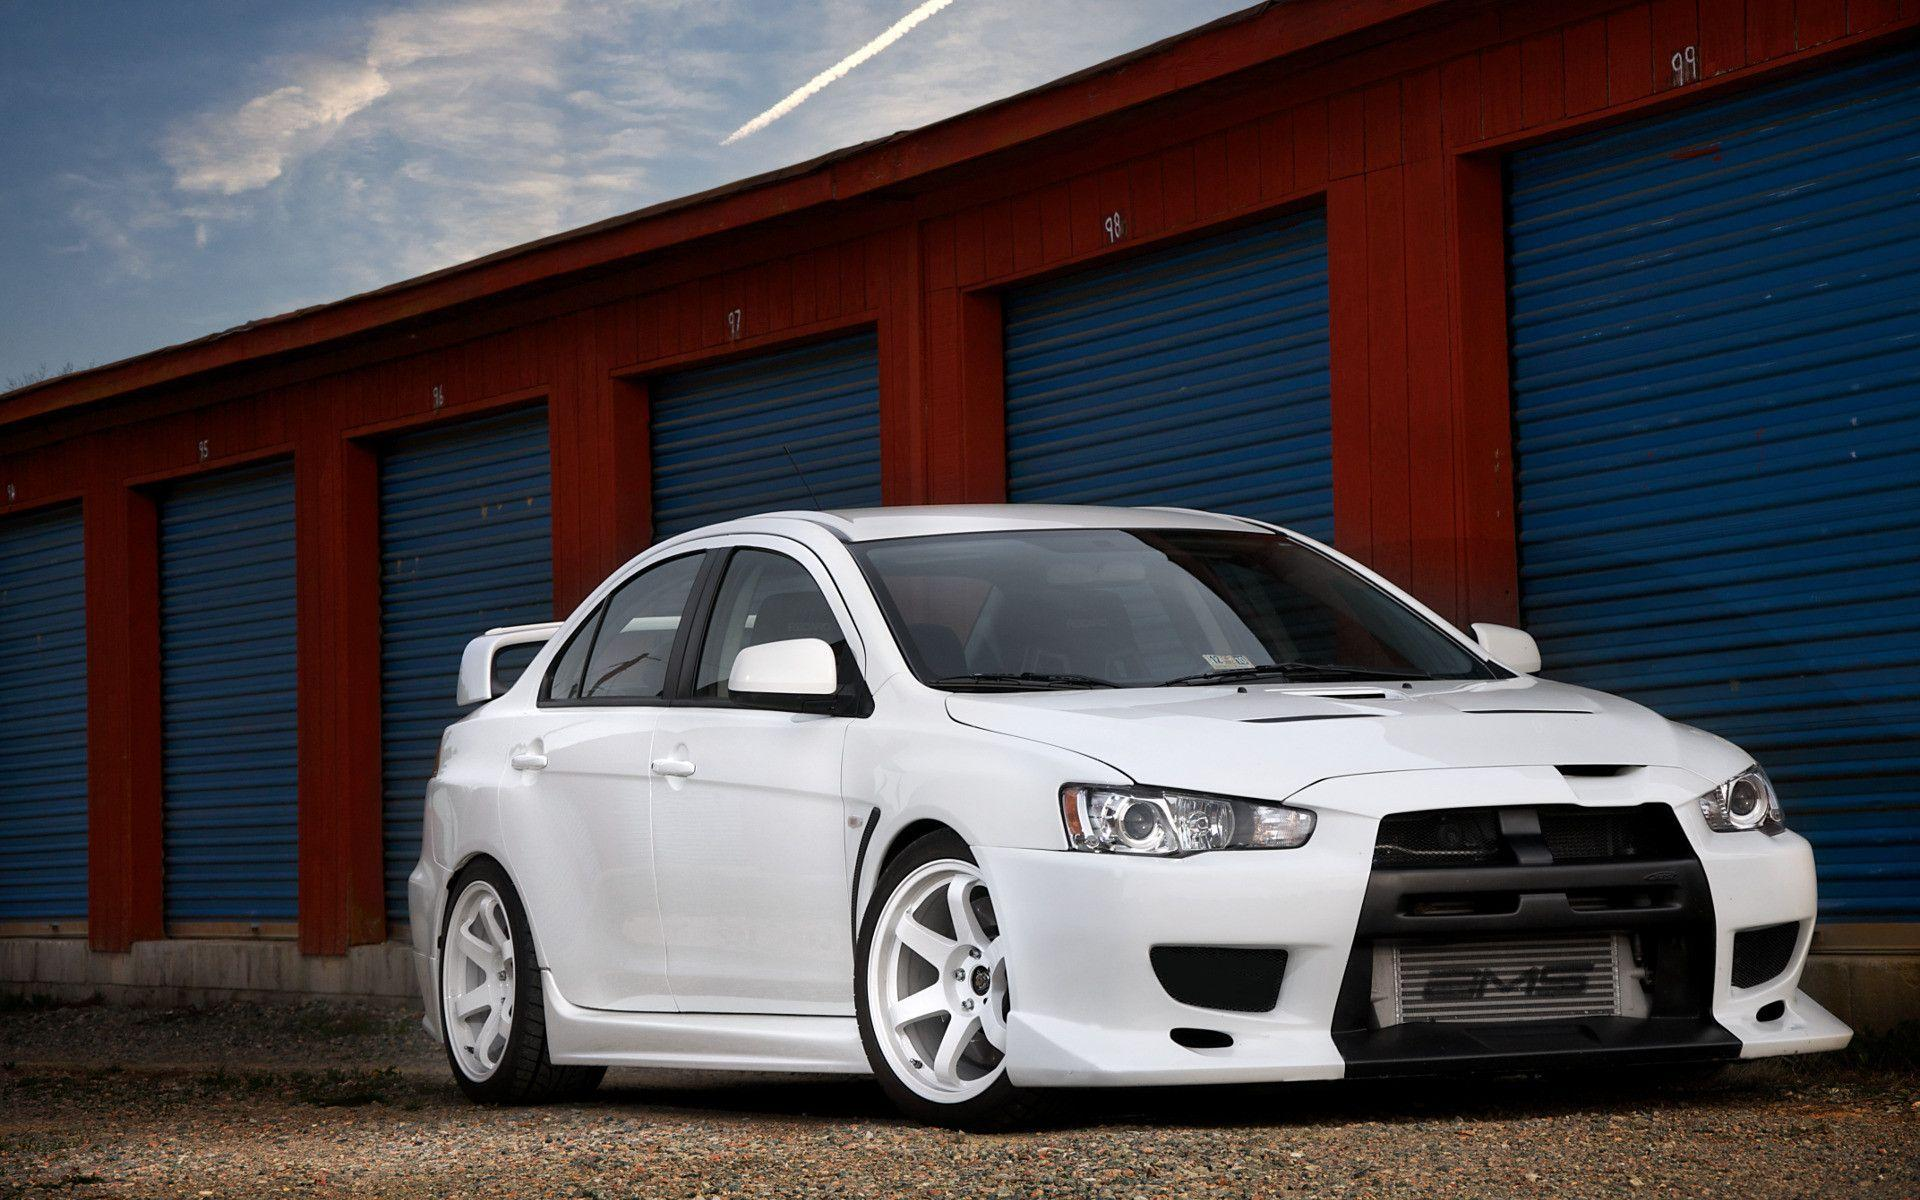 Mitsubishi Lancer Evolution Wallpapers